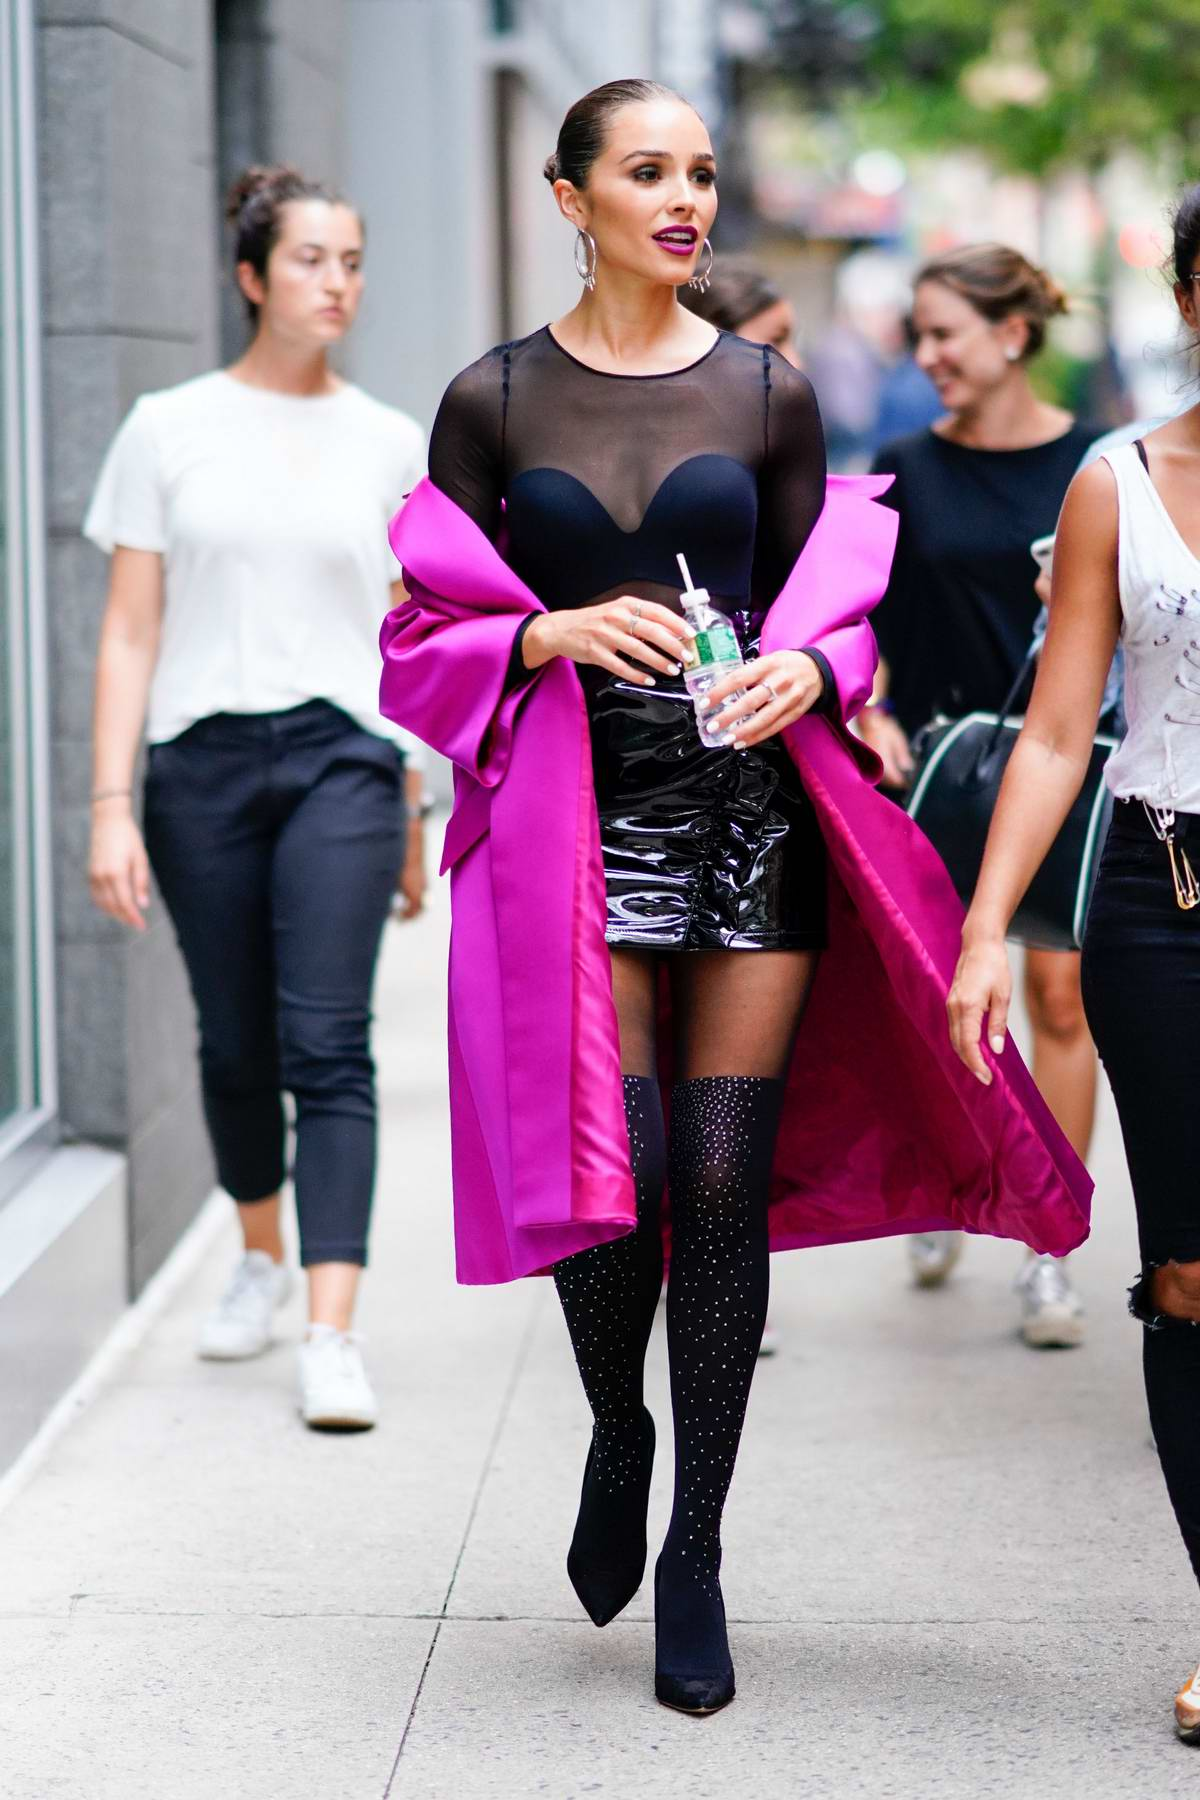 Olivia Culpo looks stunning in a sheer black outfit under a fuschia jacket in New York City